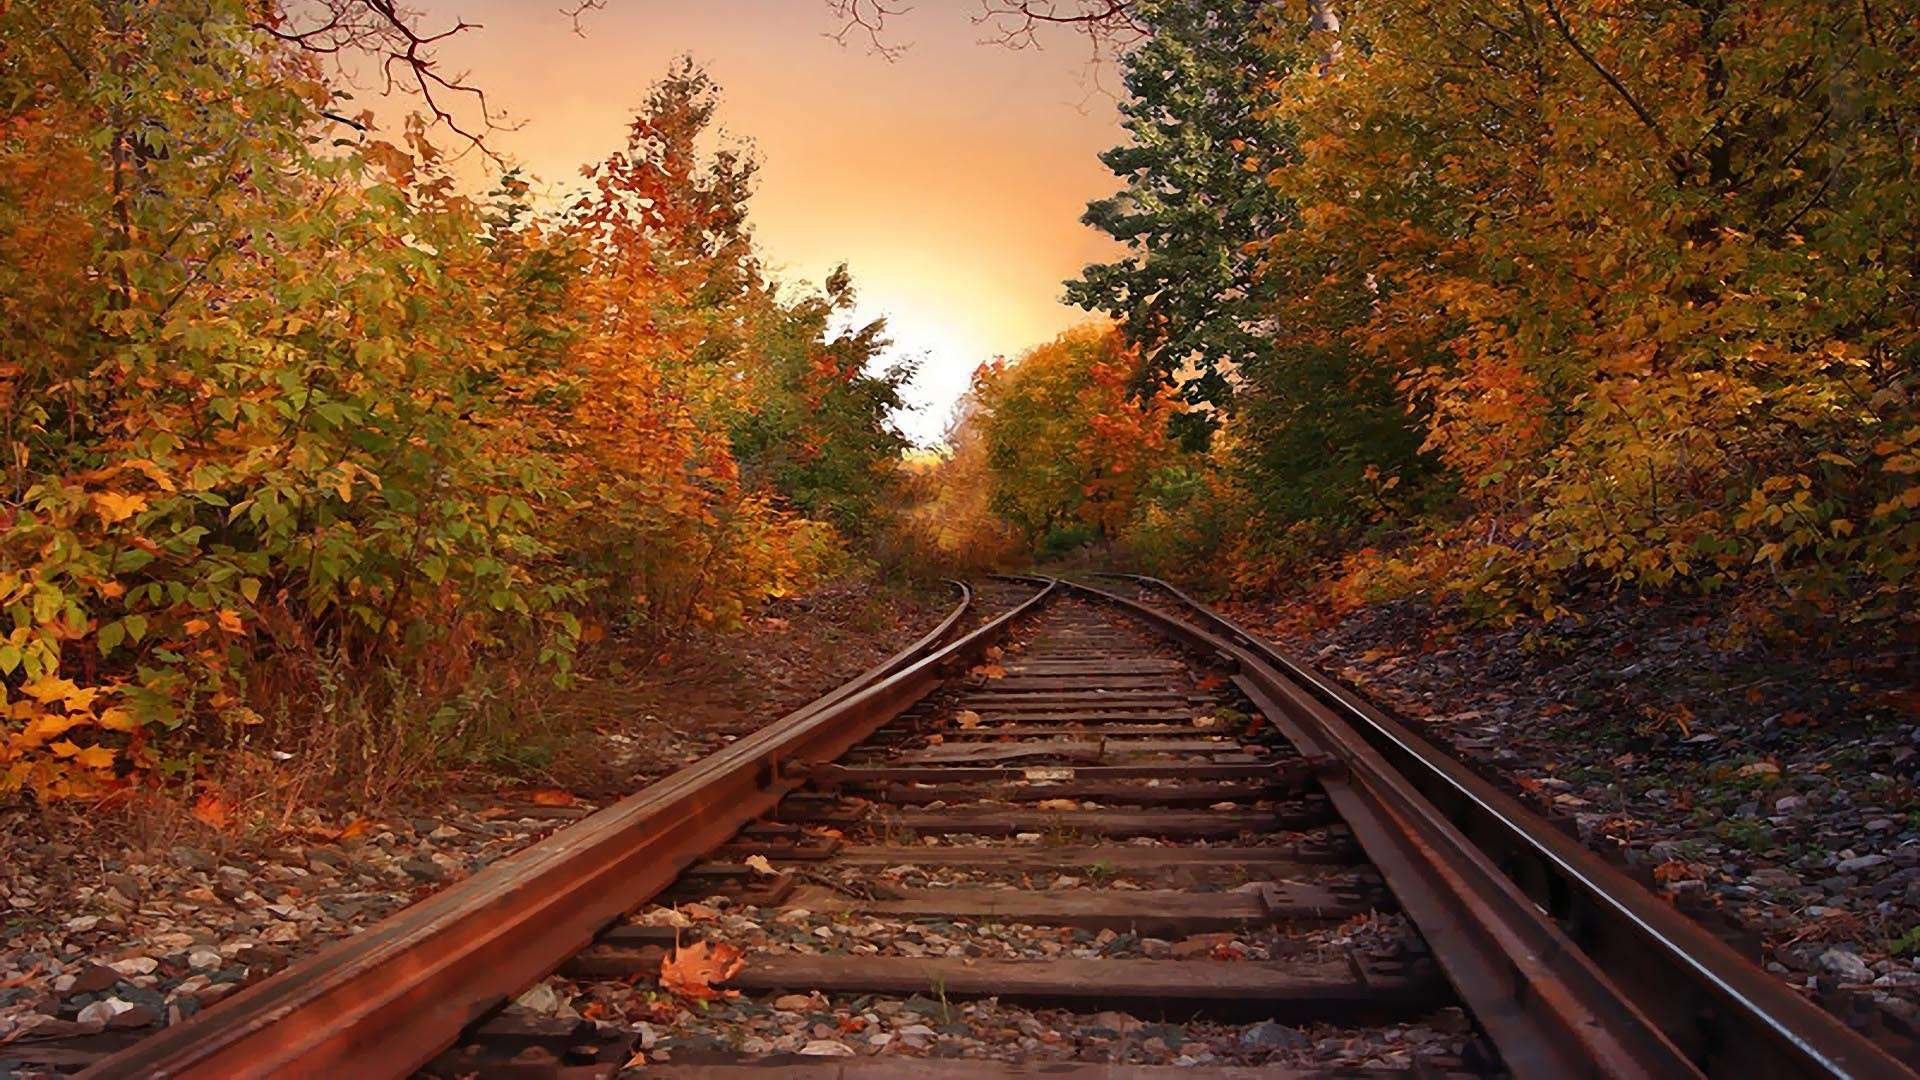 4k Quality Iphone Wallpaper: 4k Railroad Wallpapers High Quality